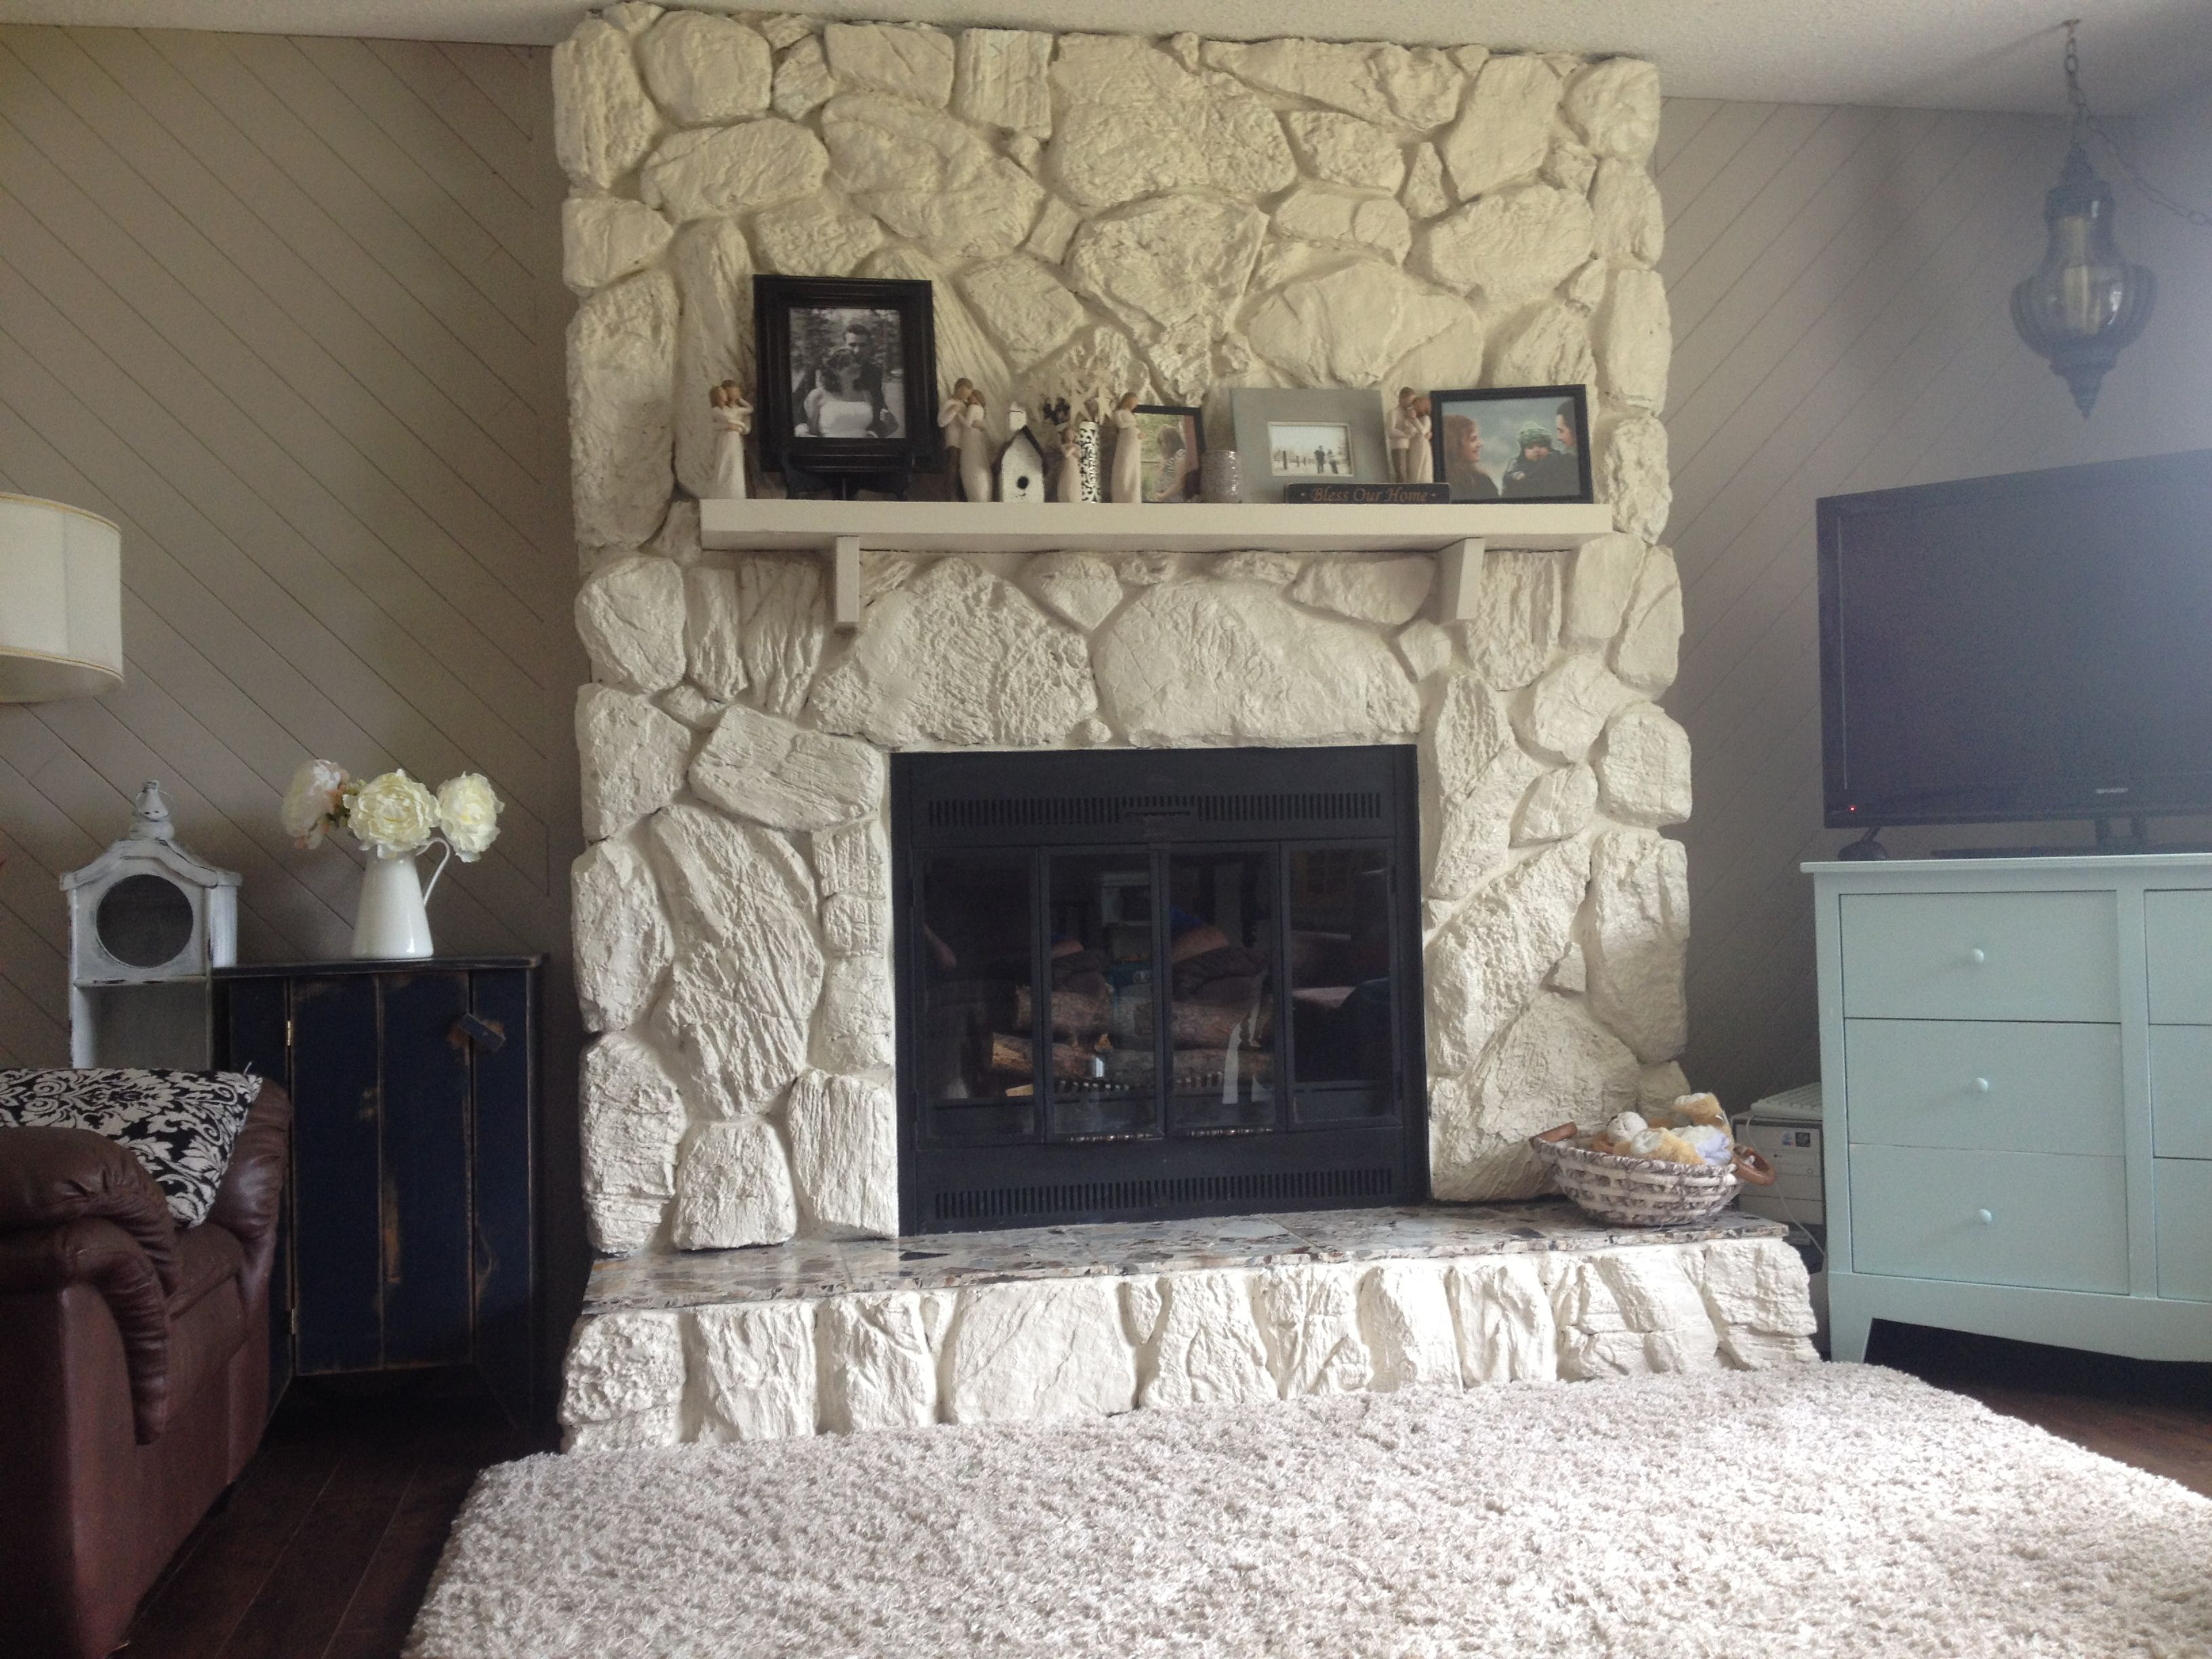 painted rock fireplace huge improvement makes the room feel so